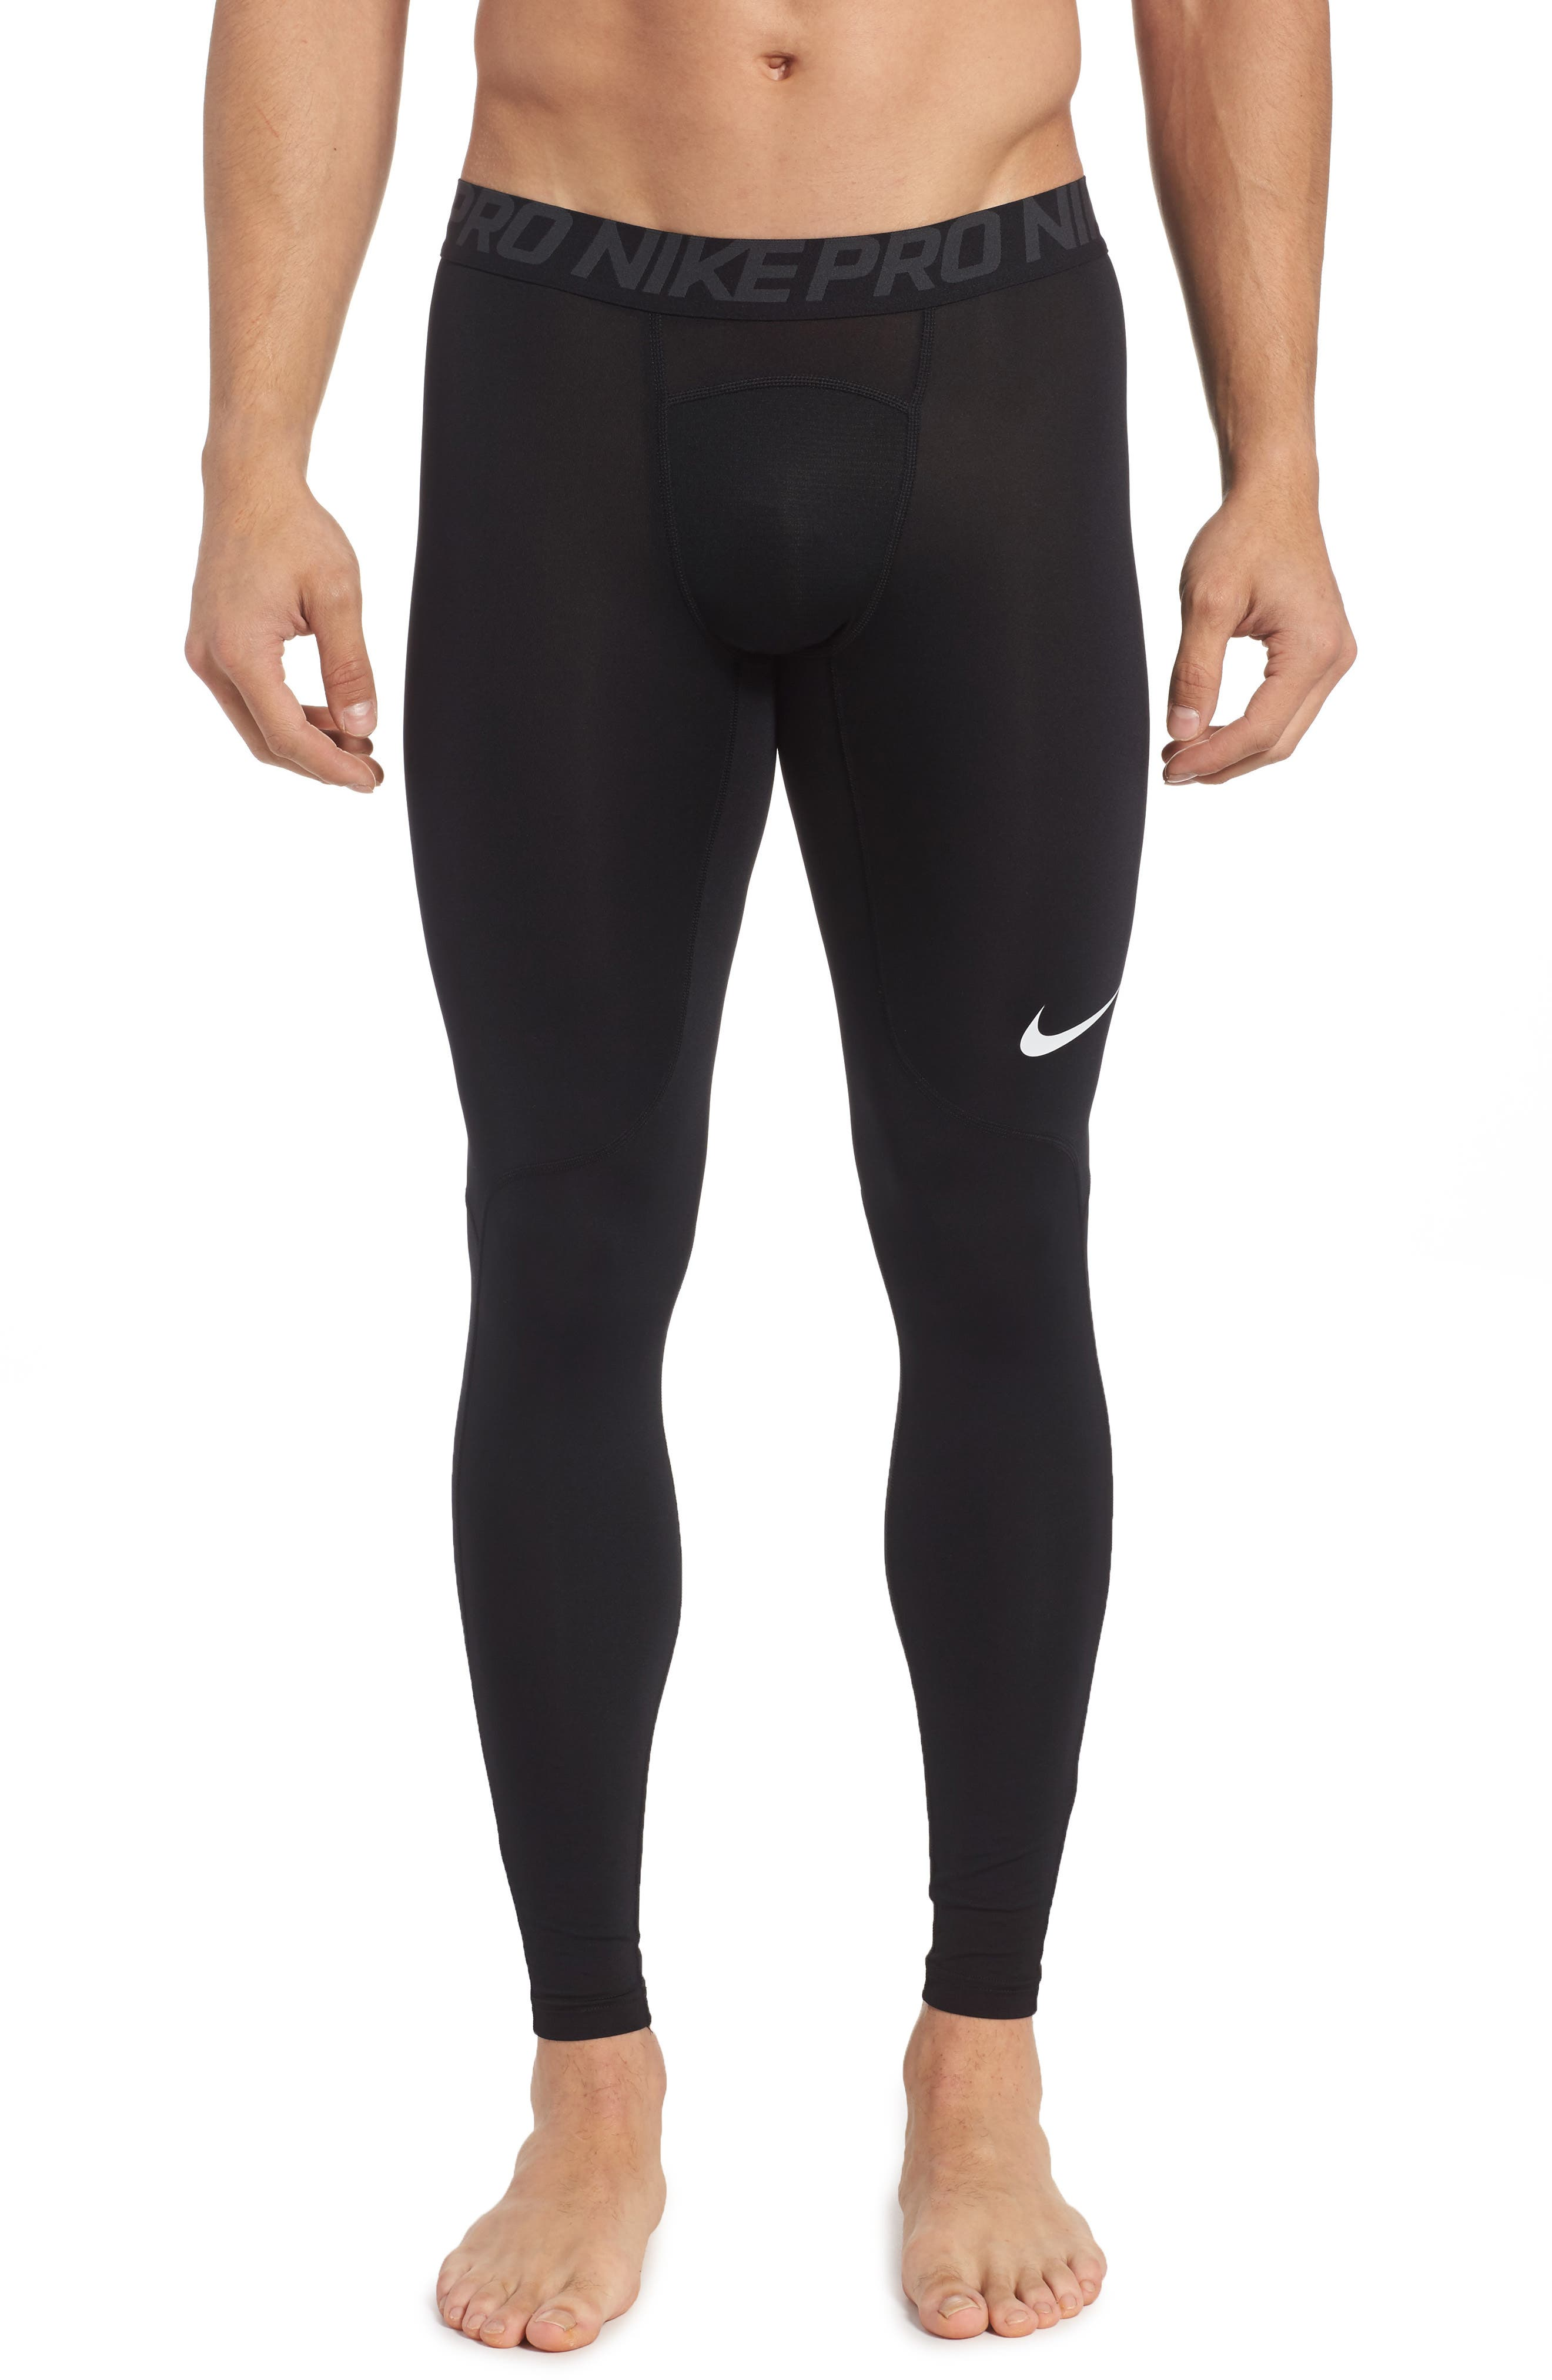 Pro Athletic Tights,                             Main thumbnail 1, color,                             Black/ Anthracite/ White